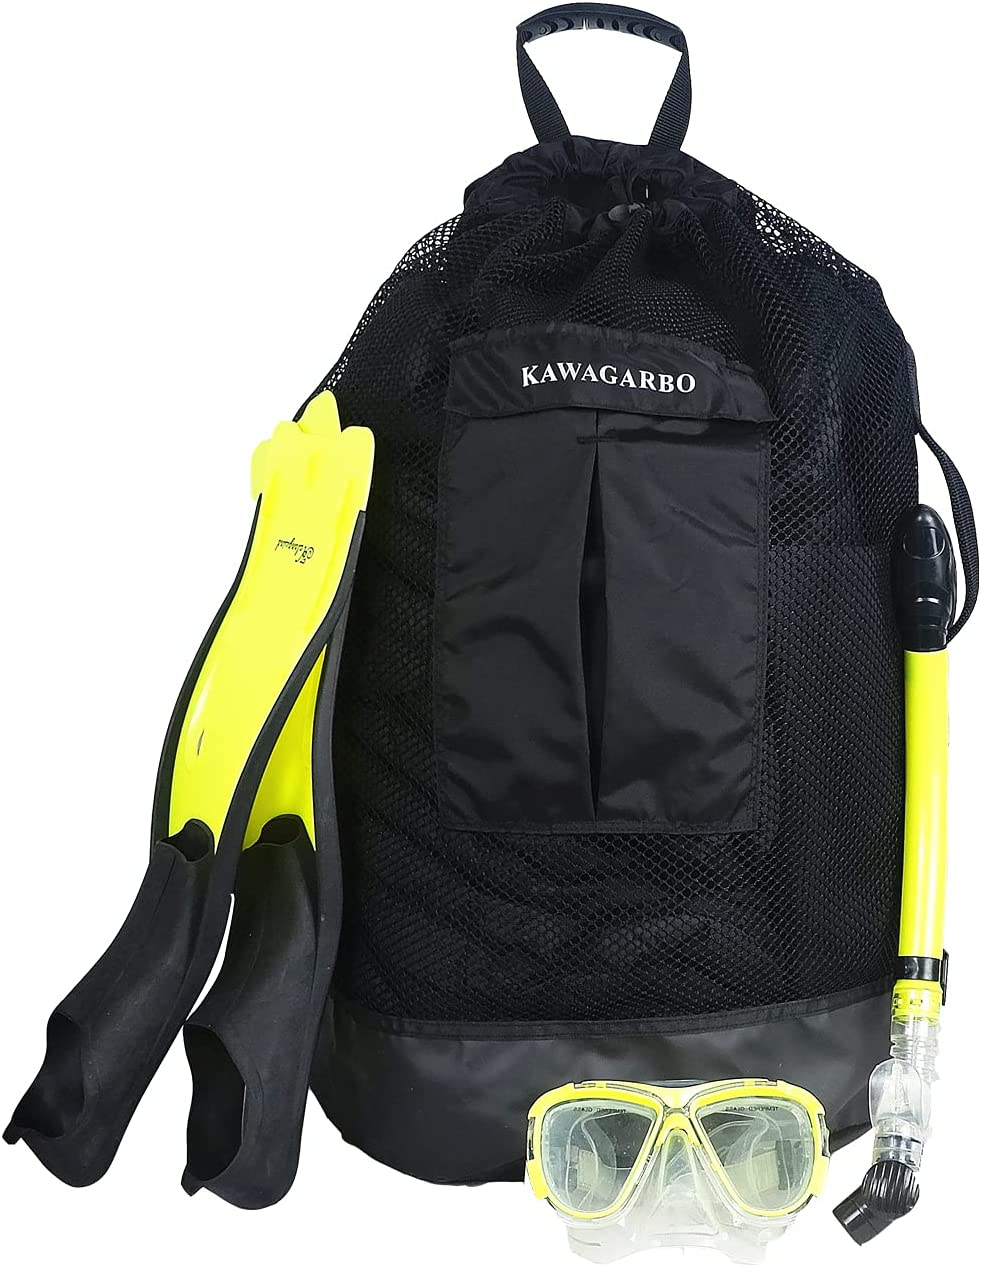 Kawagarbo Scuba Miami Mall Diving Bag - Large Backpack Mesh Scub Beauty products for Travel